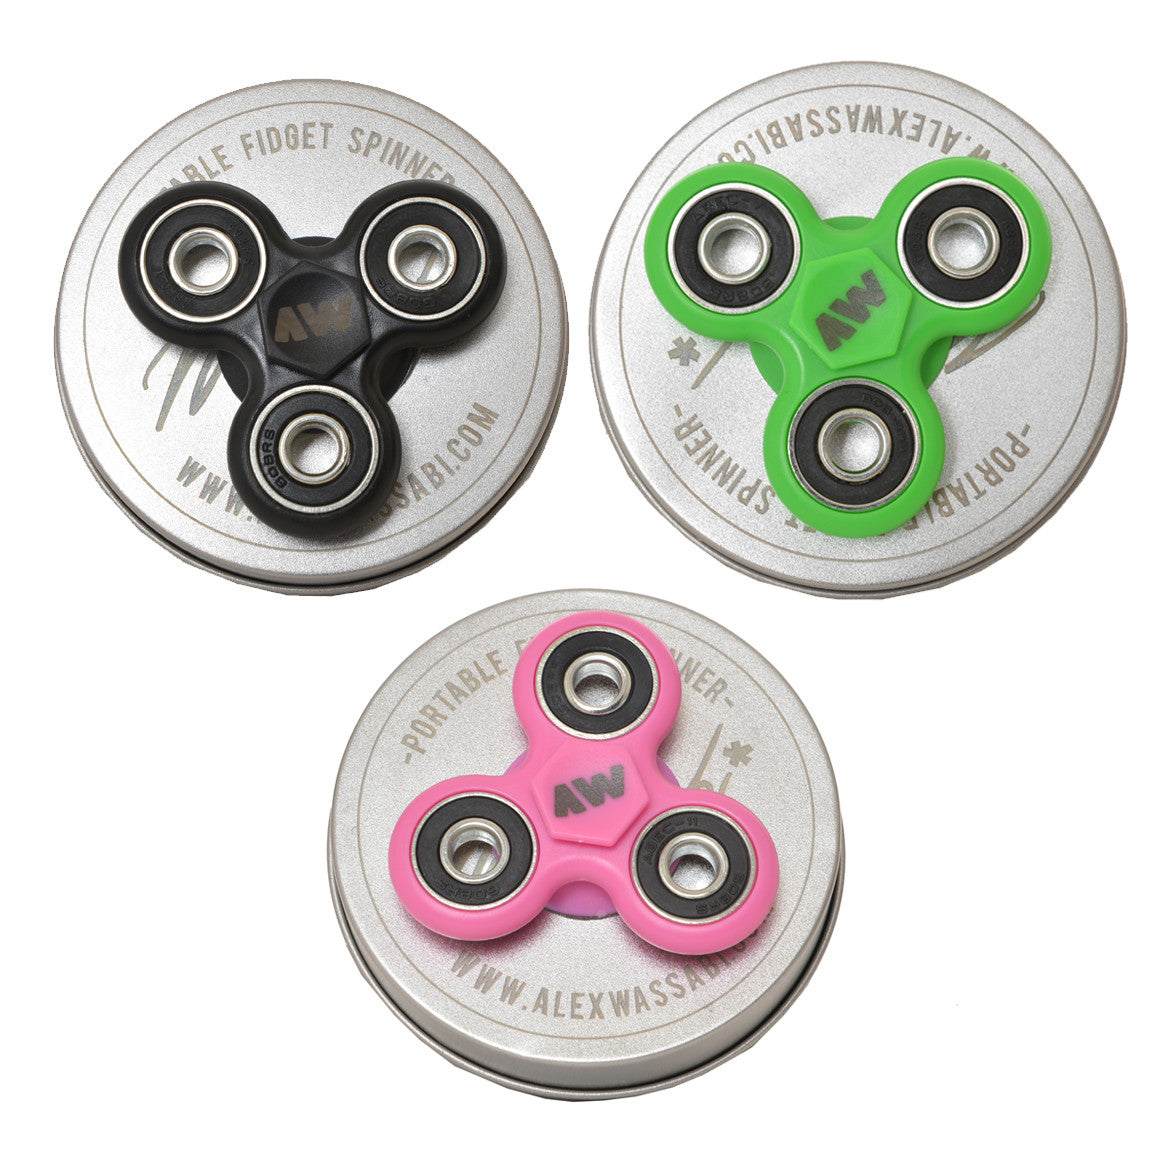 Fidget spinner package